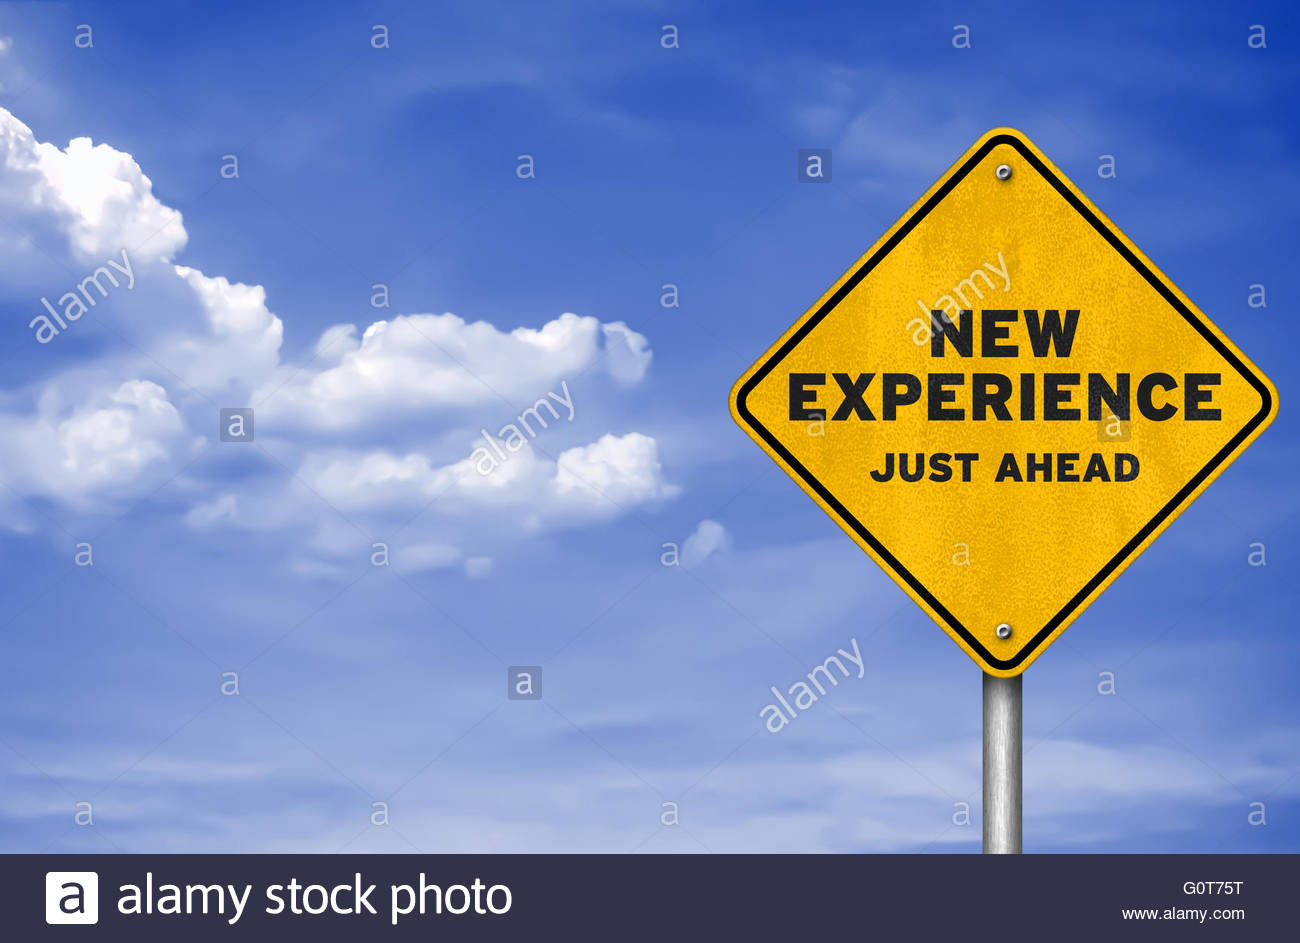 New experience - road sign concept - Stock Image